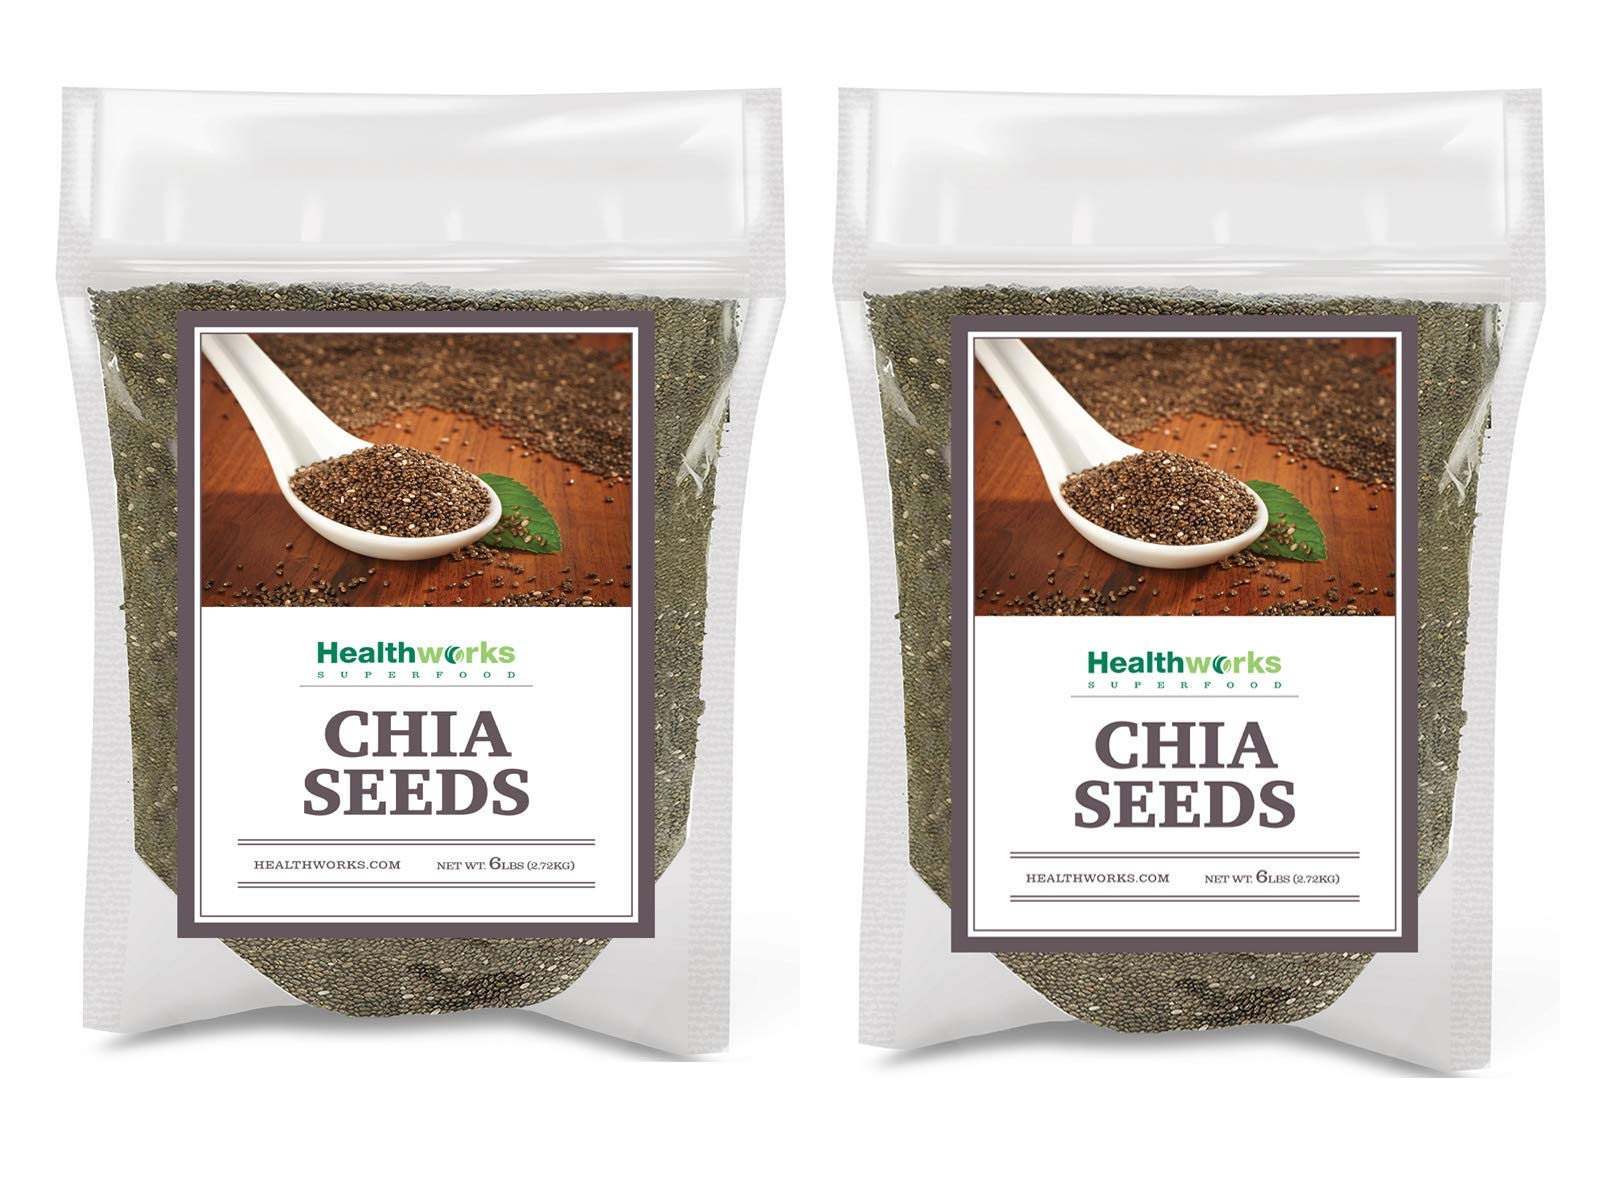 Healthworks Chia Seeds Raw (12lb / 192oz) (2 x 6 Pound Bags) | Pesticide-Free, Premium & All-Natural | Contains Omega 3, Fiber & Protein | Great with Shakes, Smoothies & Oatmeal by Healthworks